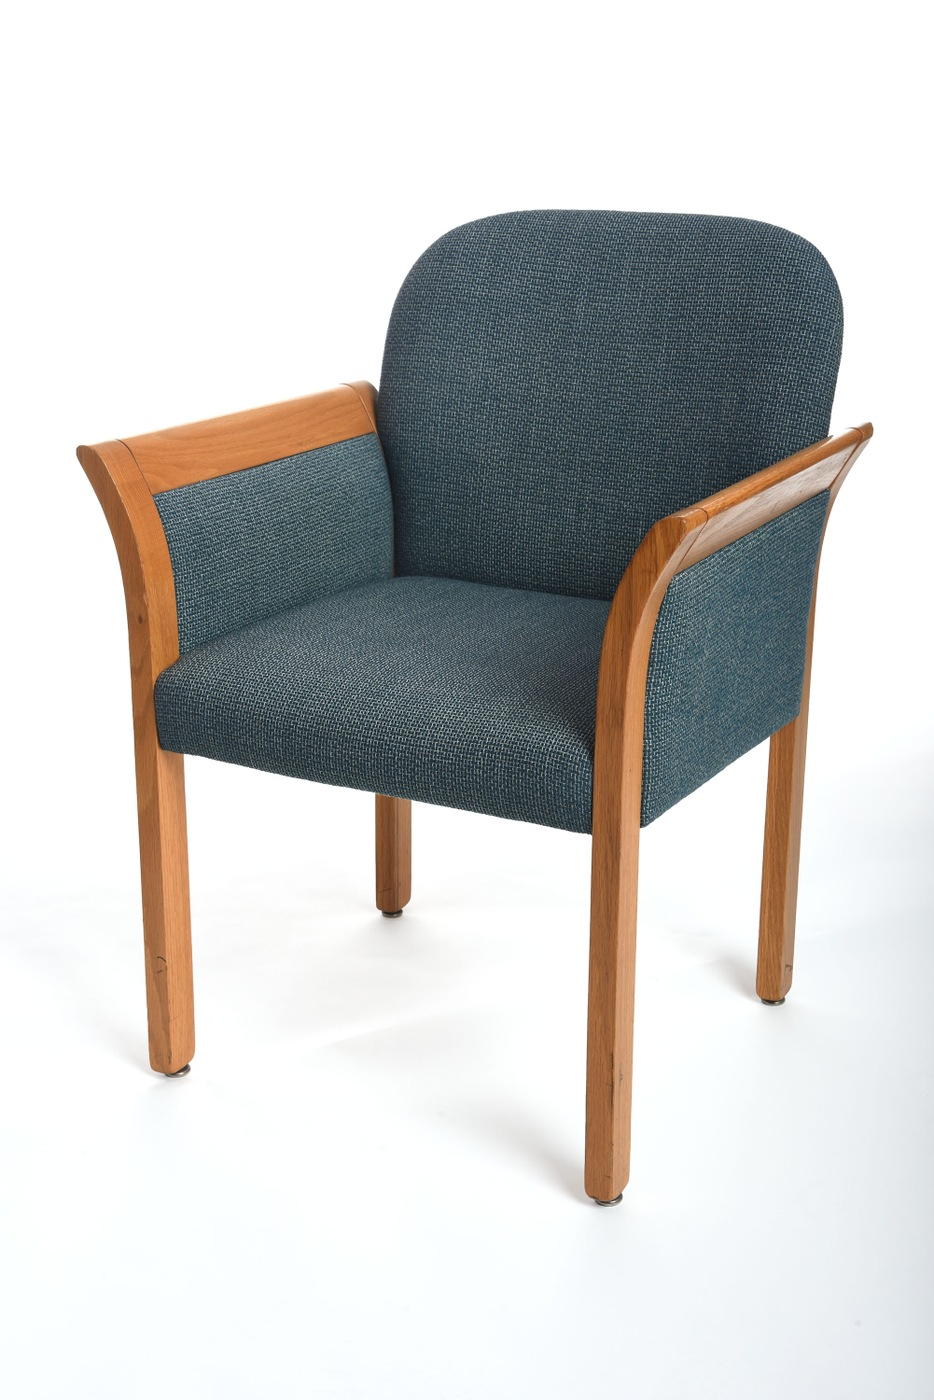 Photo of the chair FBI Special Agent Earl Edwin Pitts was sitting in at the FBI Academy when he was arrested on espionage charges in 1996.